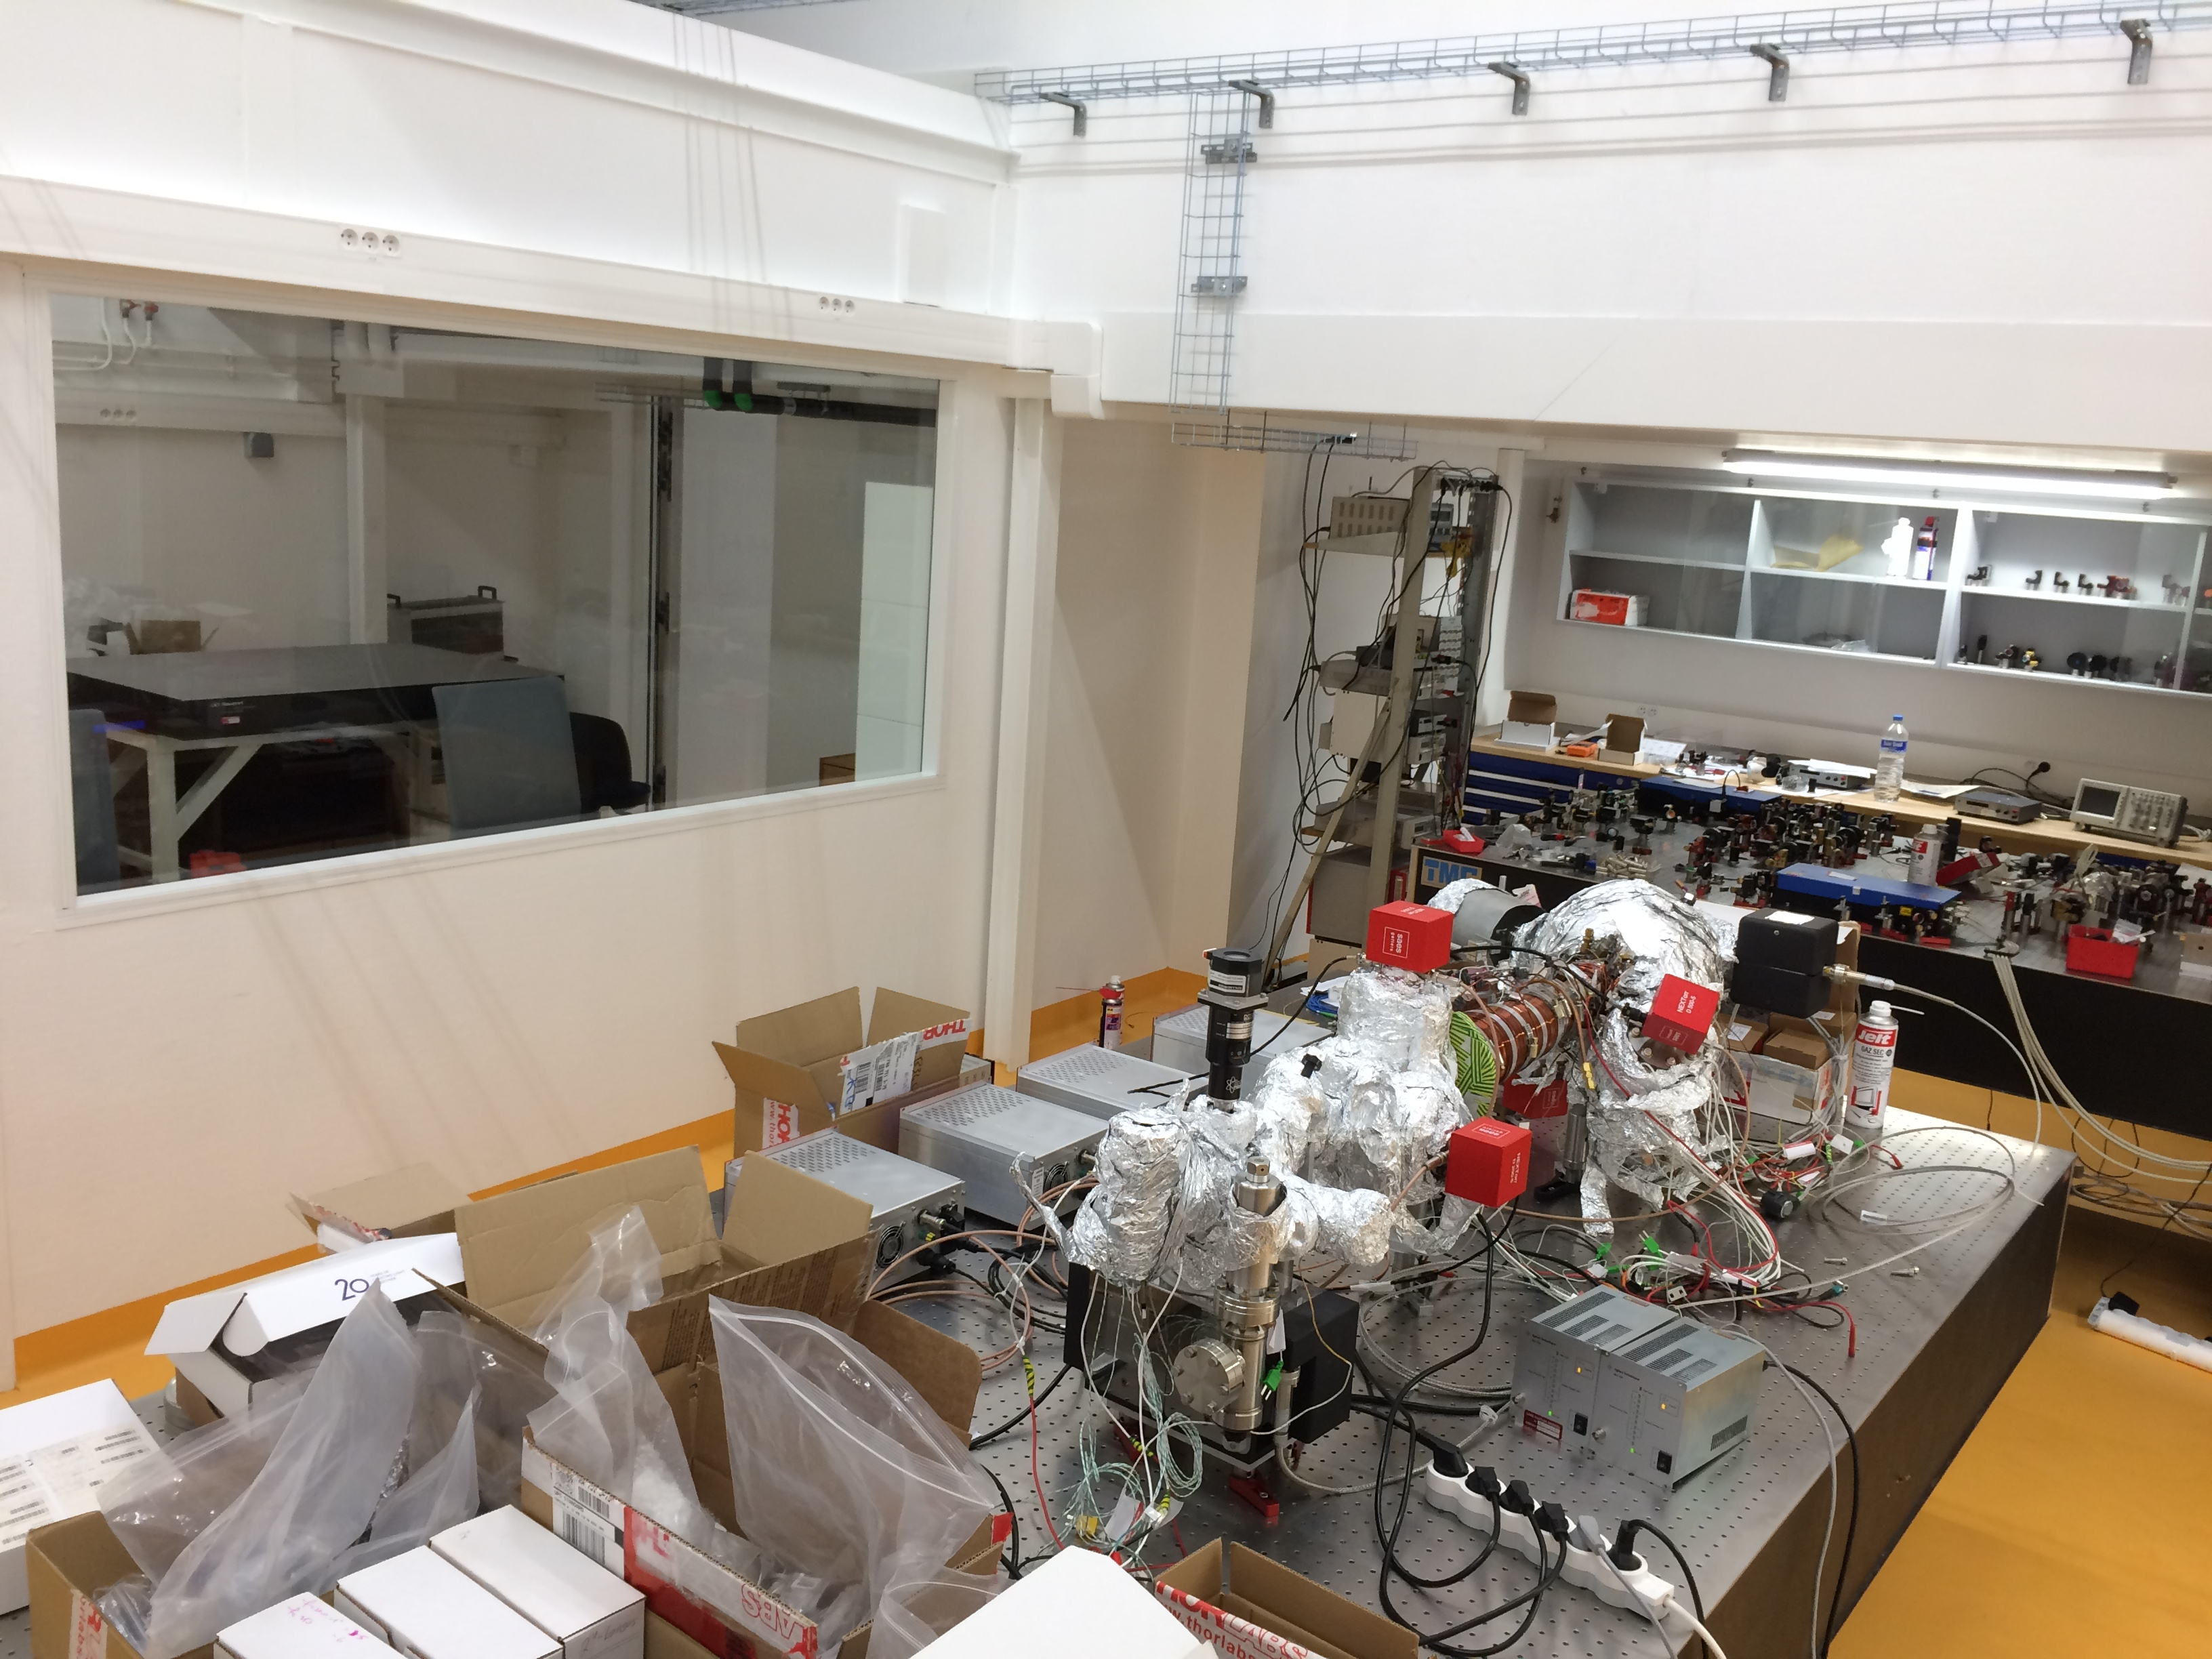 Moving into the new lab